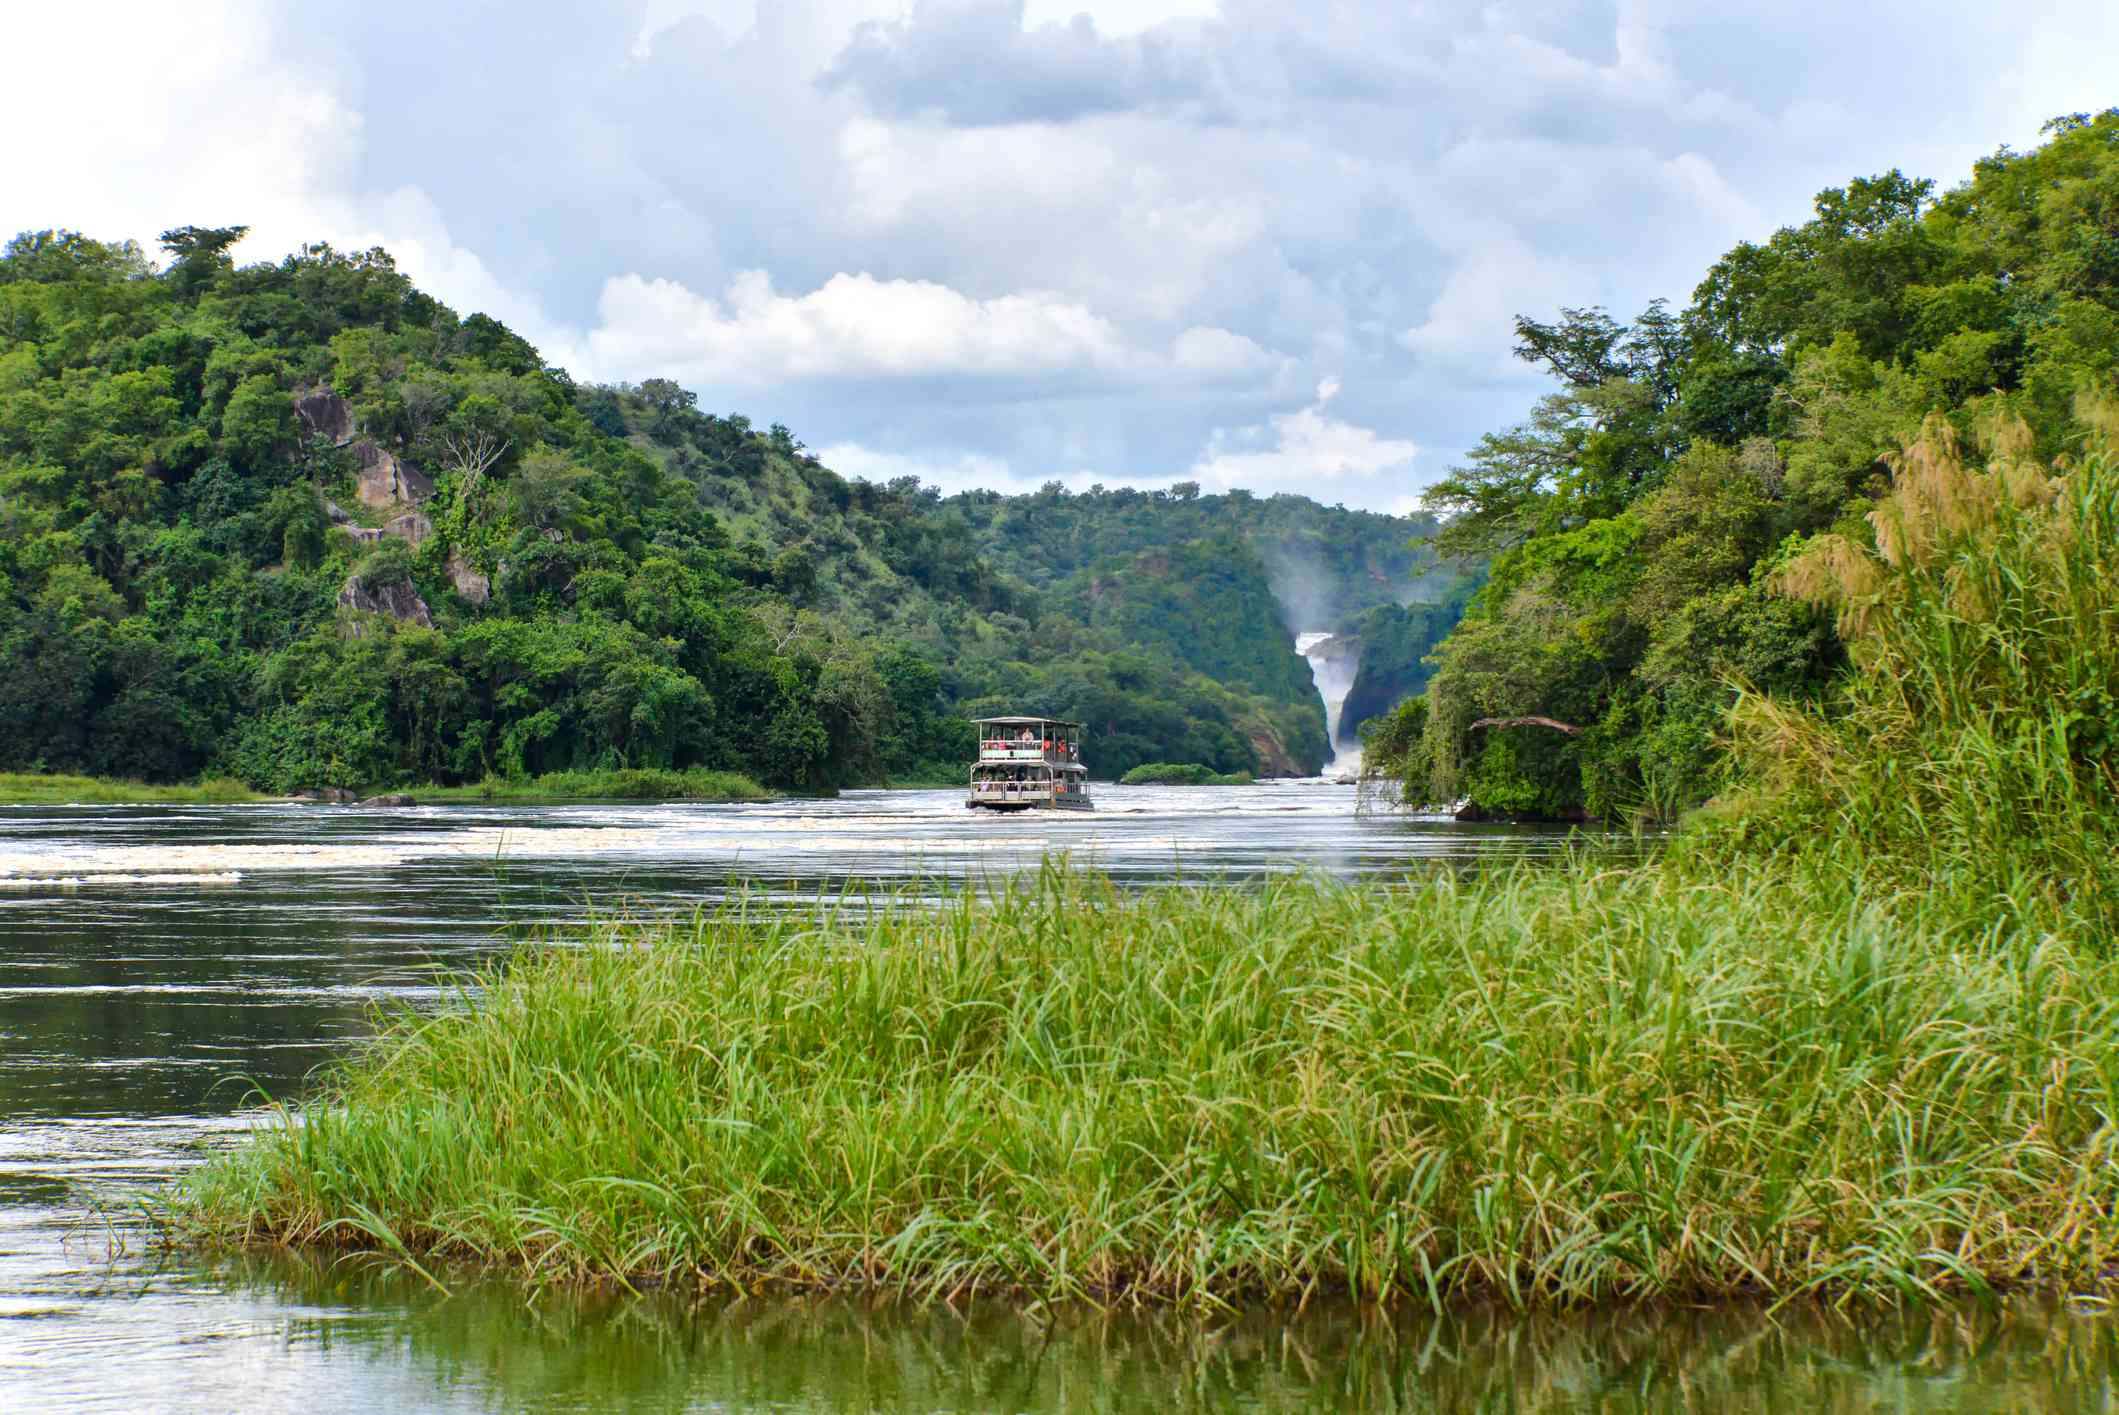 River boat on the Victoria Nile with Murchison Falls in the background